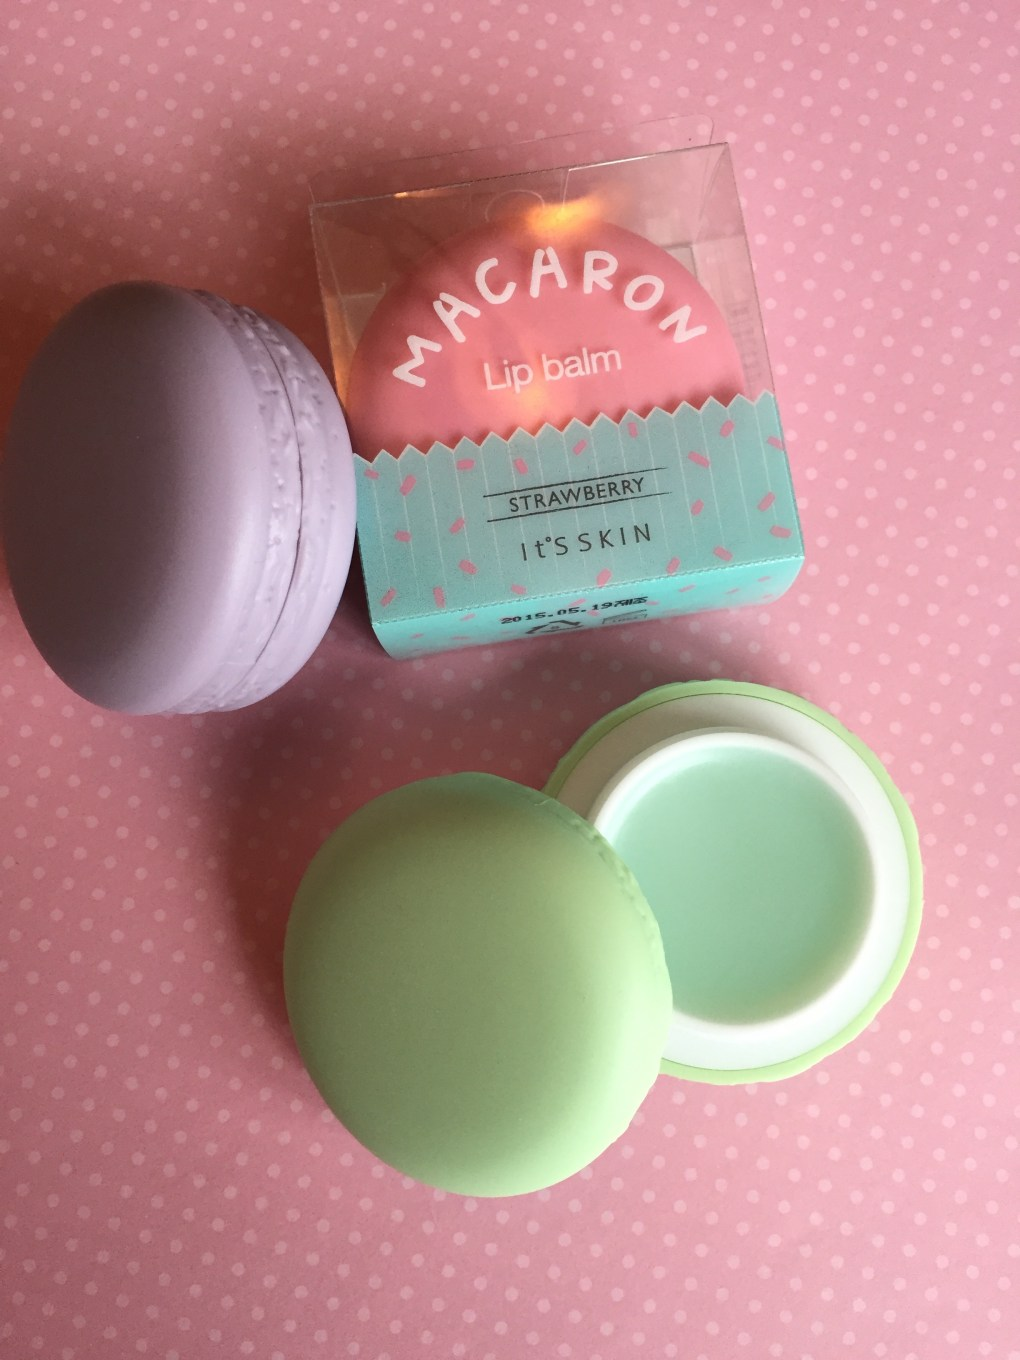 Macaroon Lip Balm from It's Skin